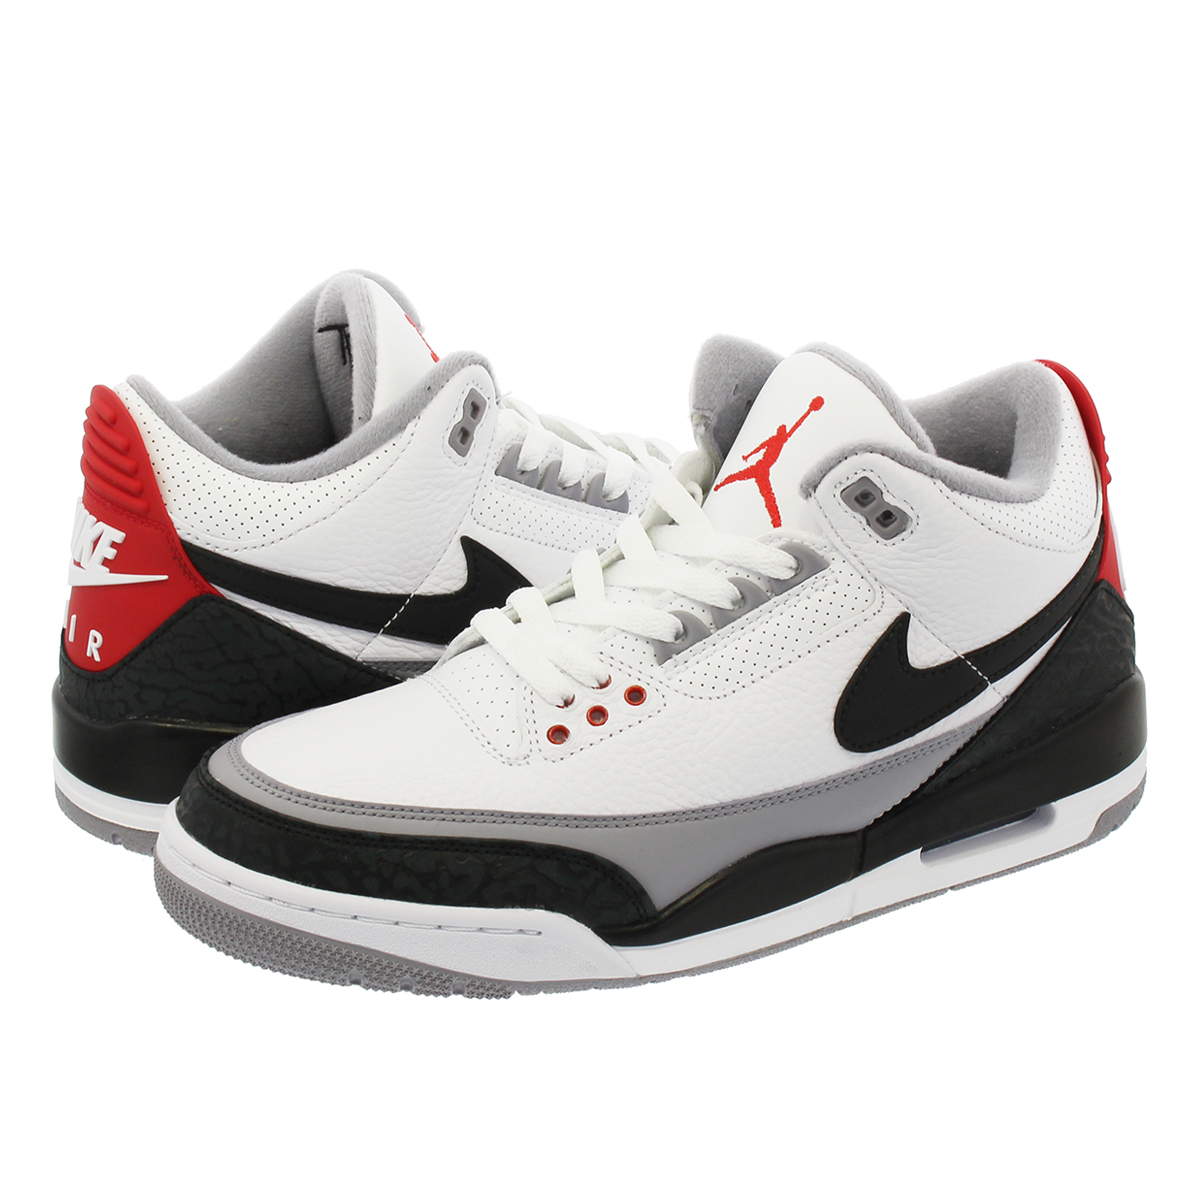 best website d847d 7f3e4 NIKE AIR JORDAN 3 RETRO TINKER NRG Nike Air Jordan 3 レトロティンカー NRG WHITE FIRE  RED CEMENT GREY BLACK